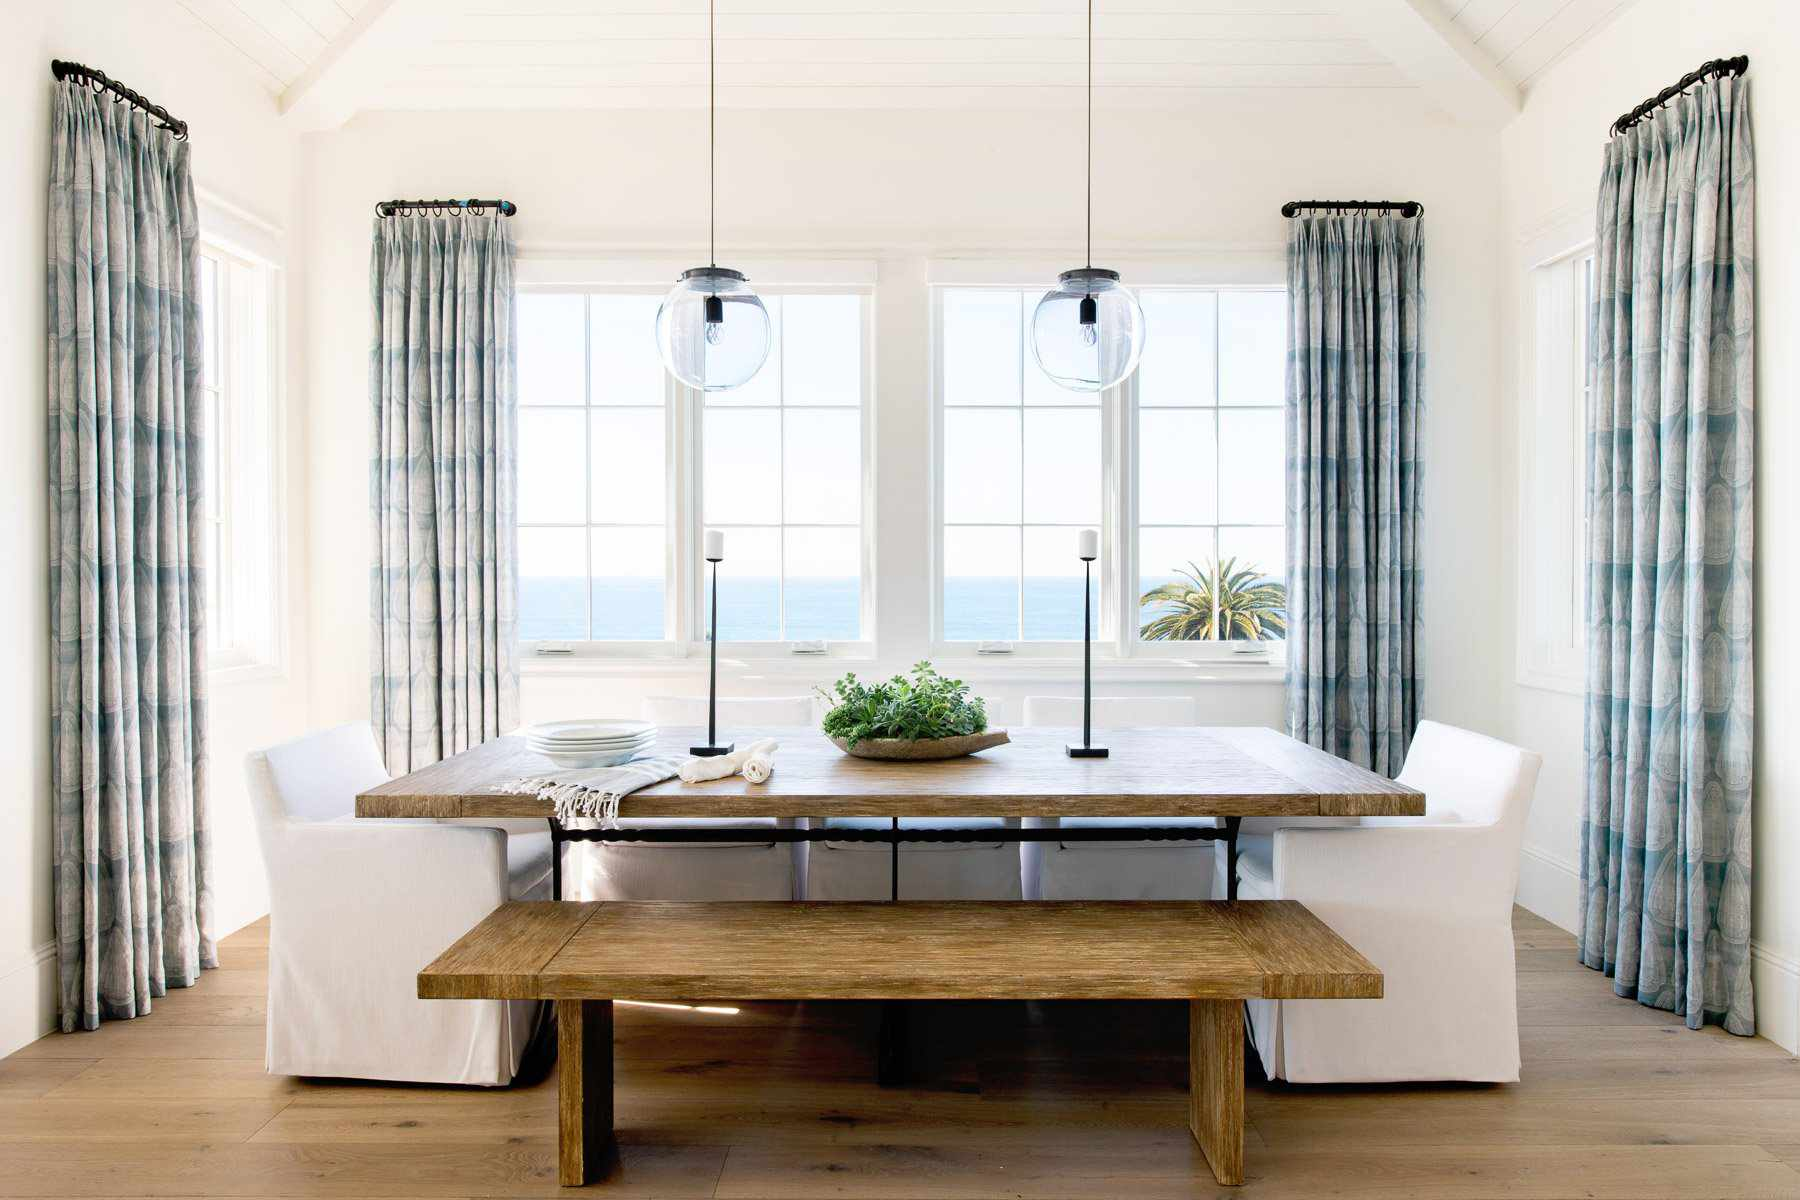 A primarily white dining room lined with blue curtains